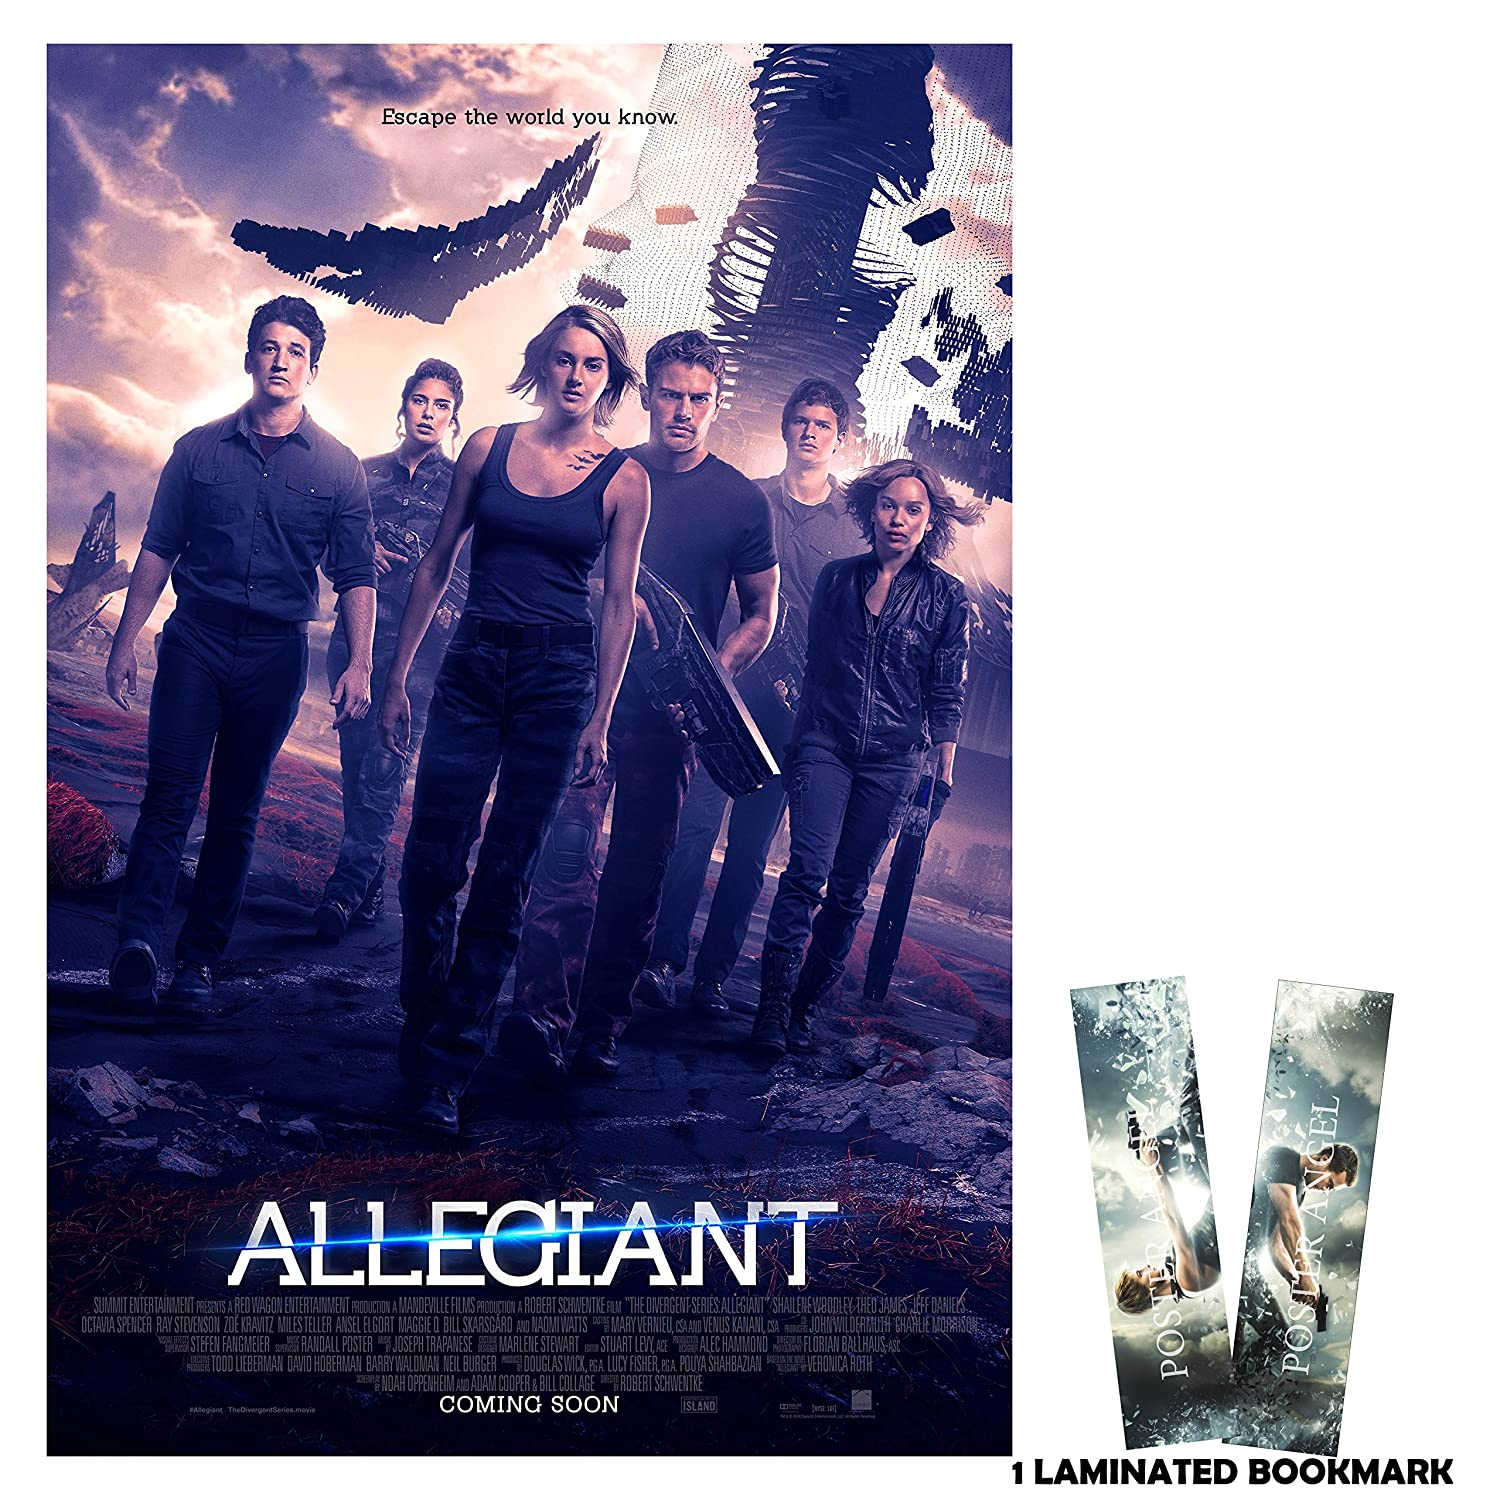 Allegiant 2016 All 13 In X 19 In Movie Poster Flyer Borderless Free Bookmark The Divergent Series Shailene Woodley Theo James By Poster Angel Amazon In Home Kitchen